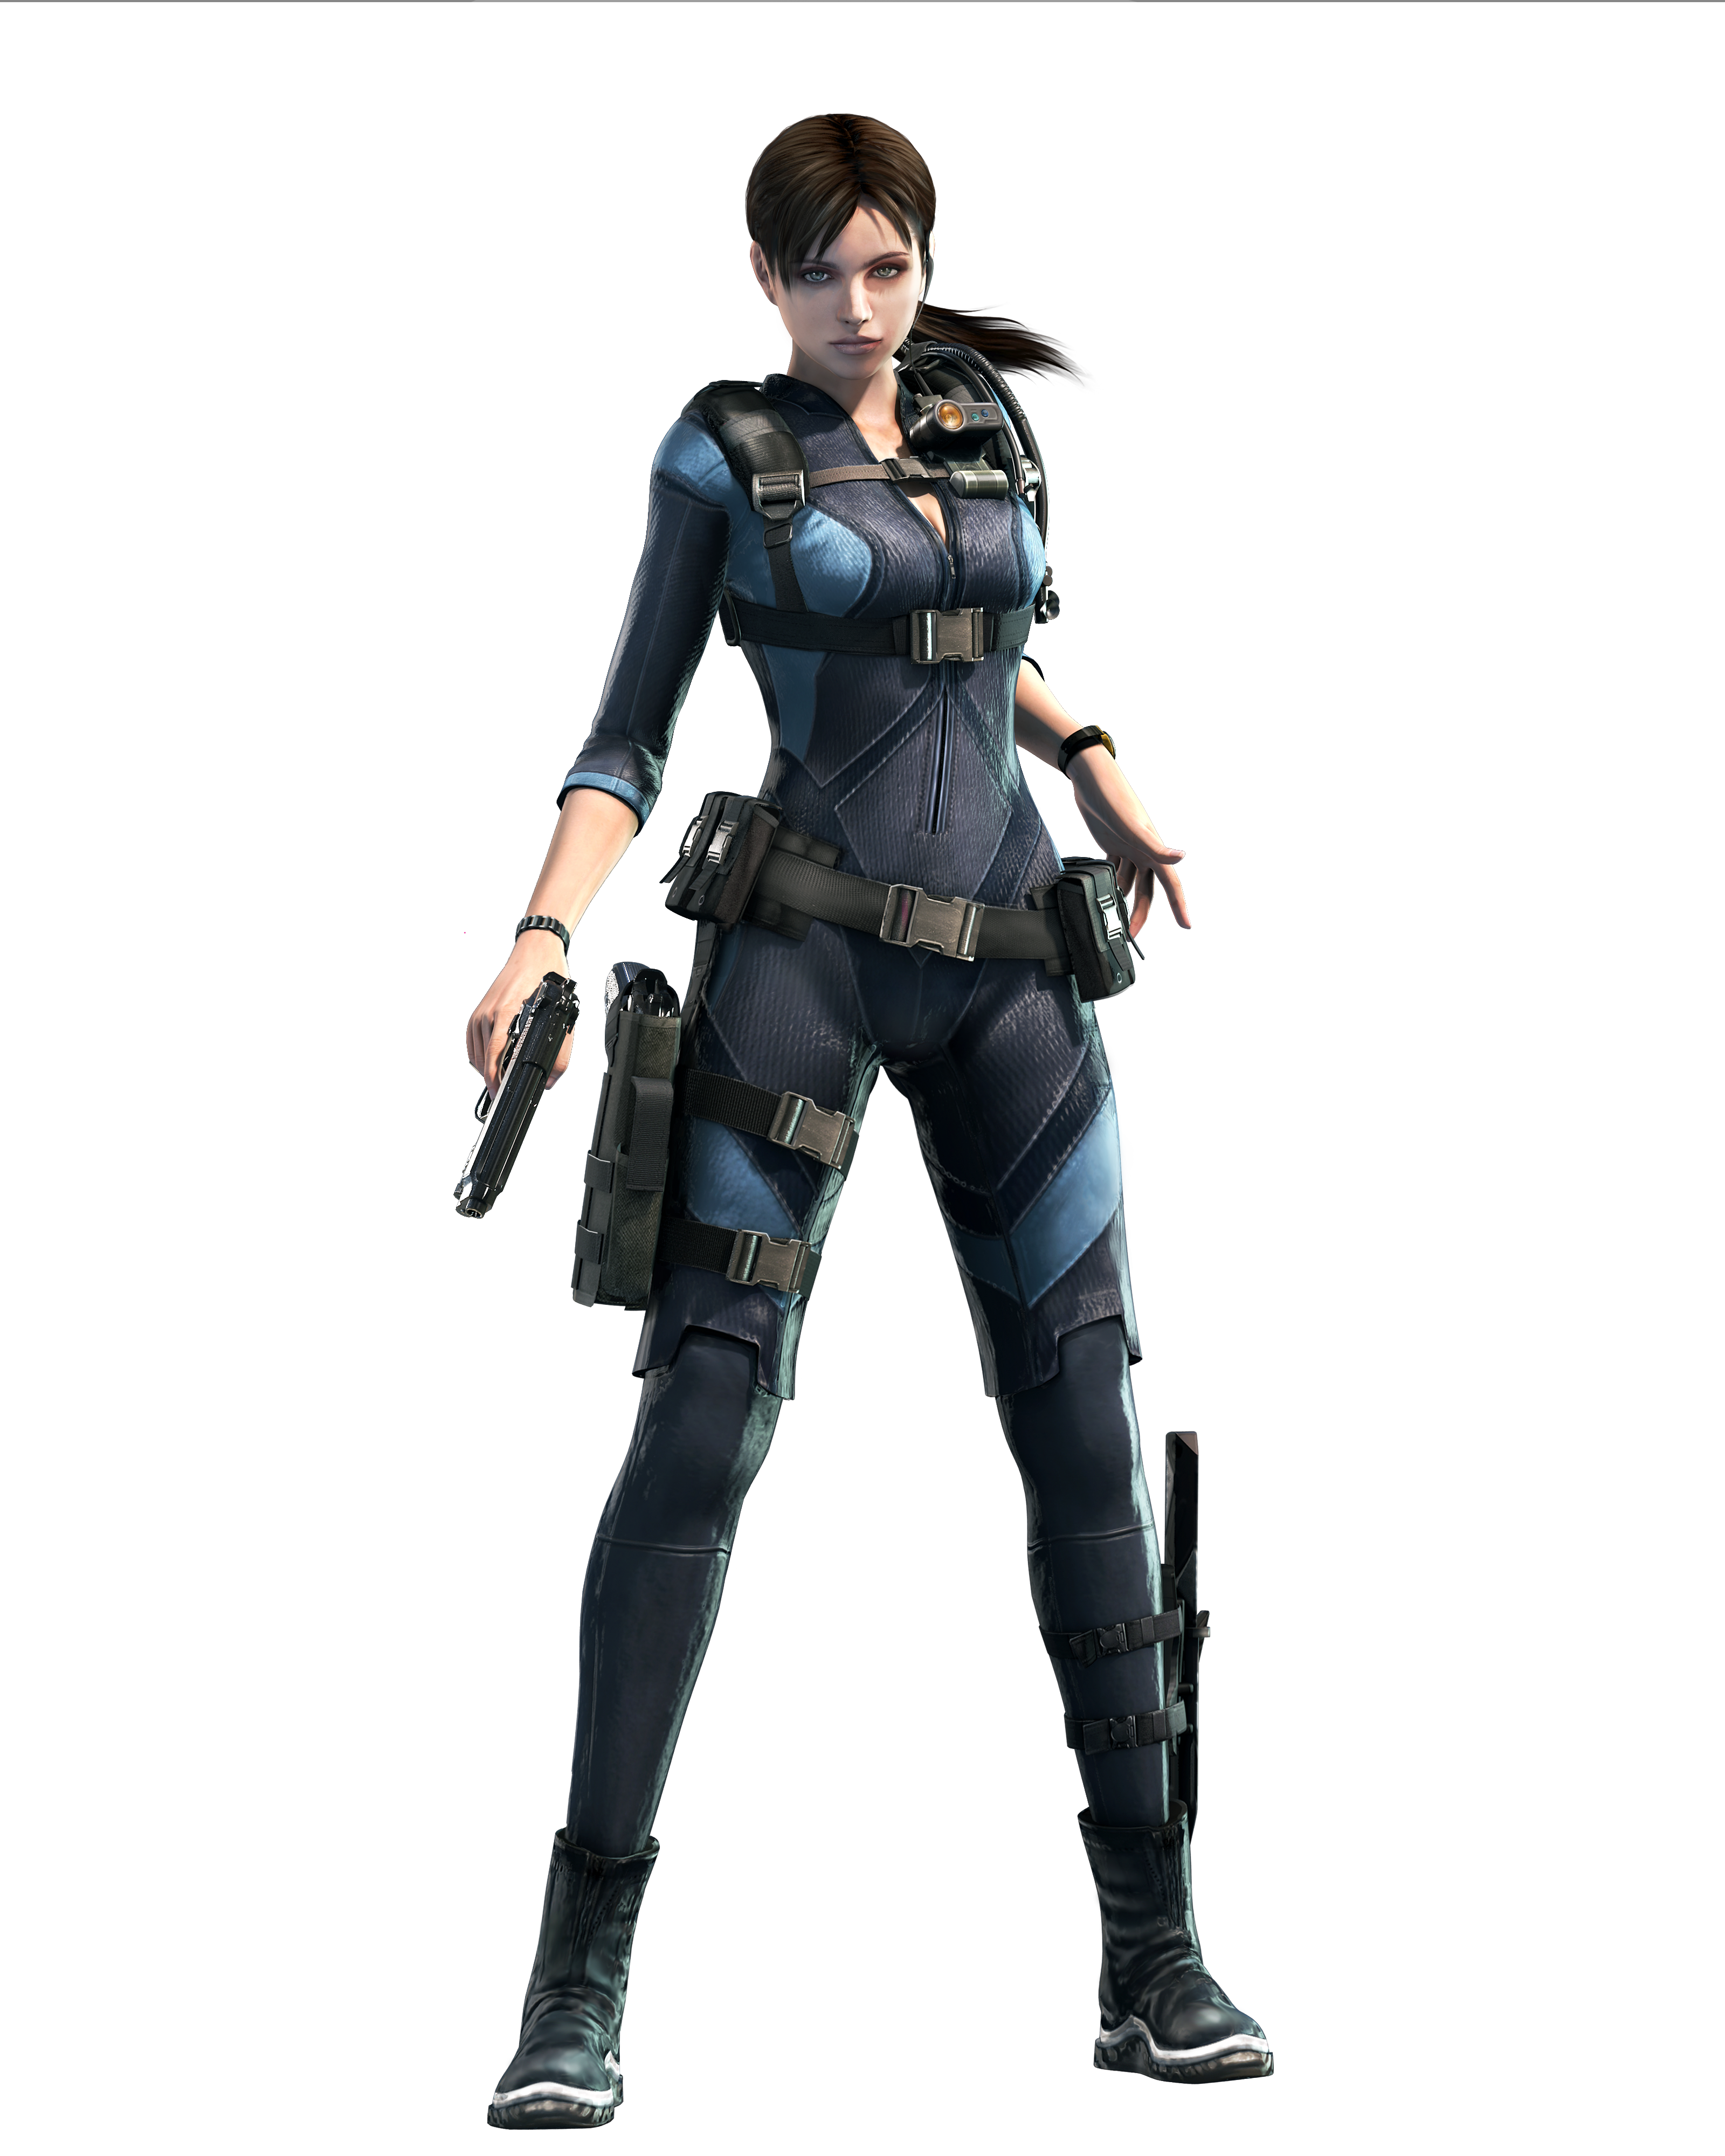 Jill Valentine Fictional Hottie From Resident Evil Revelations Aka Biohazard Revelations I Just Completed This Awesome Game On The Nintendo 3ds